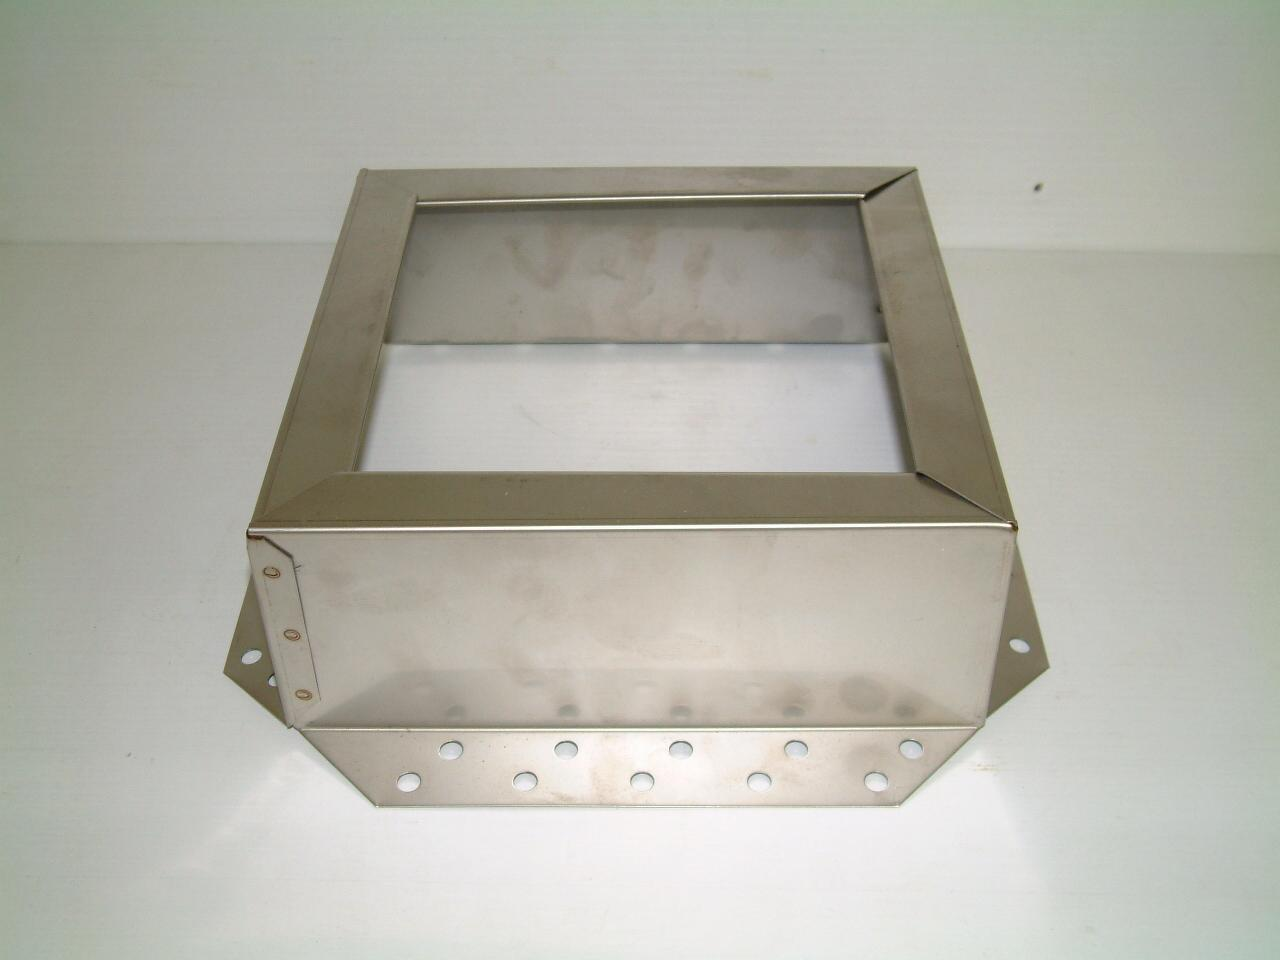 16x16 Chim A Lator Top Mount Stainless Steel Chimney